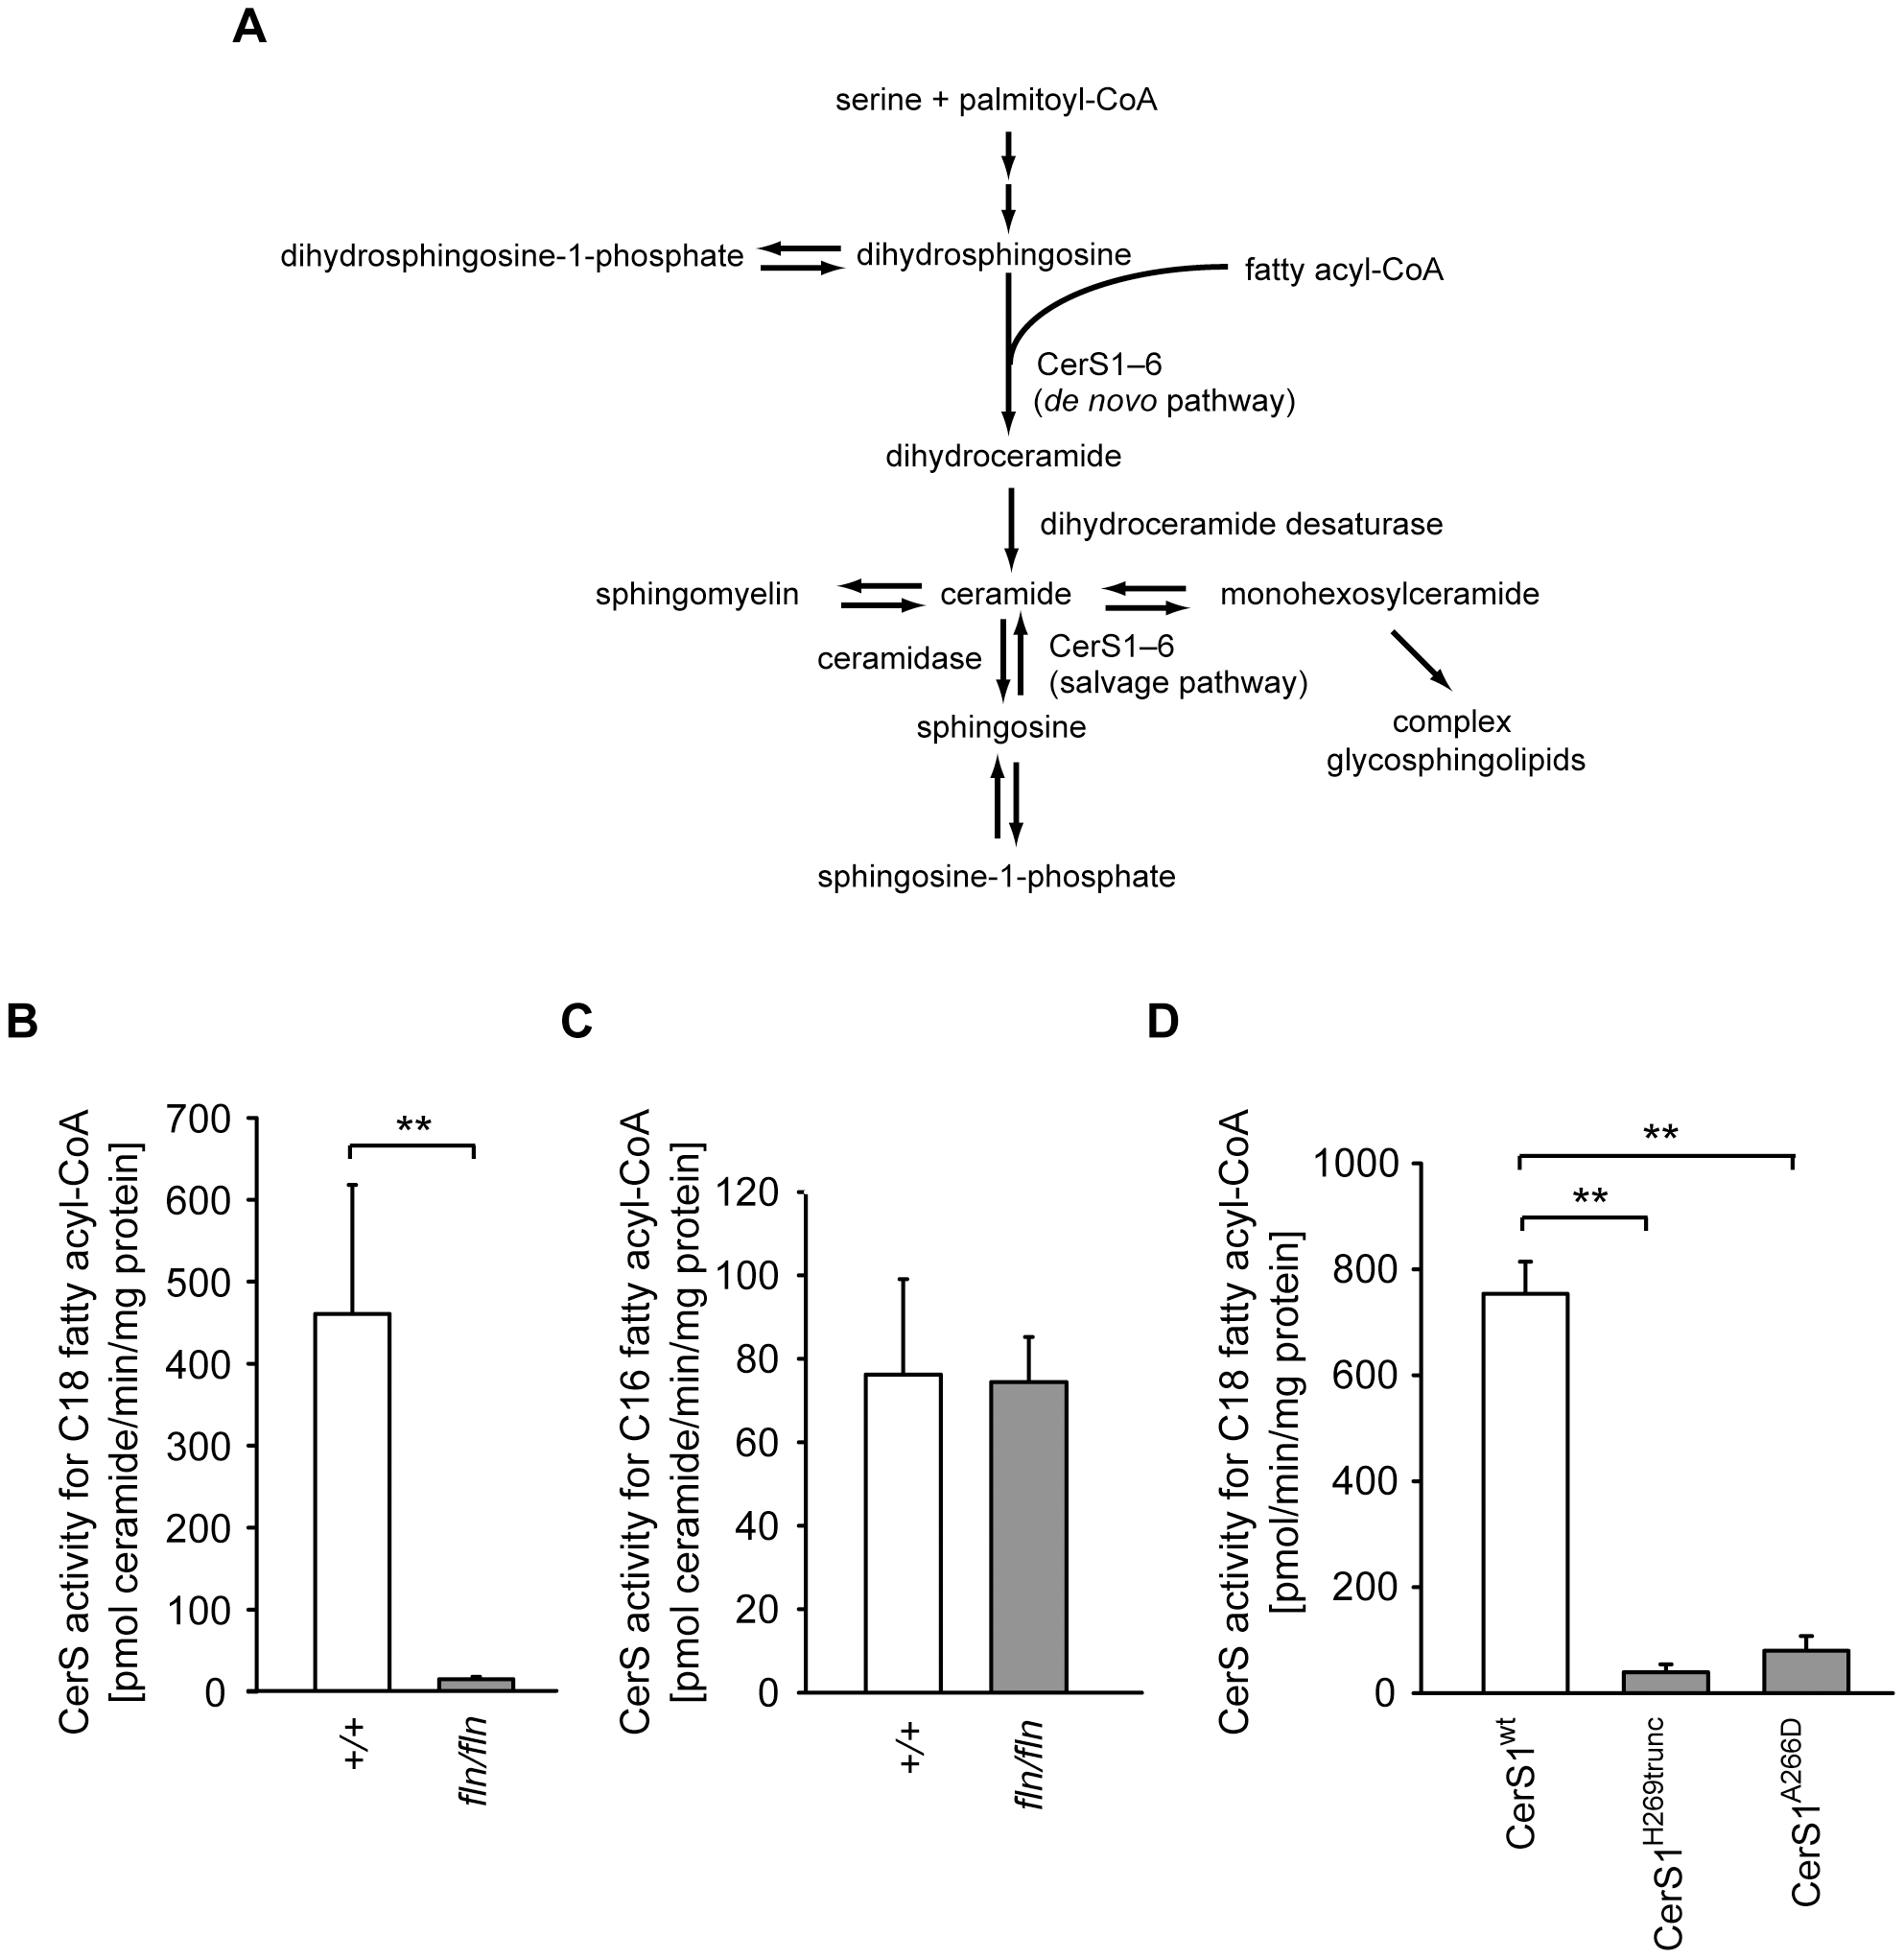 The <i>fln</i> and <i>to</i> mutations impair ceramide synthase activity of CerS1.